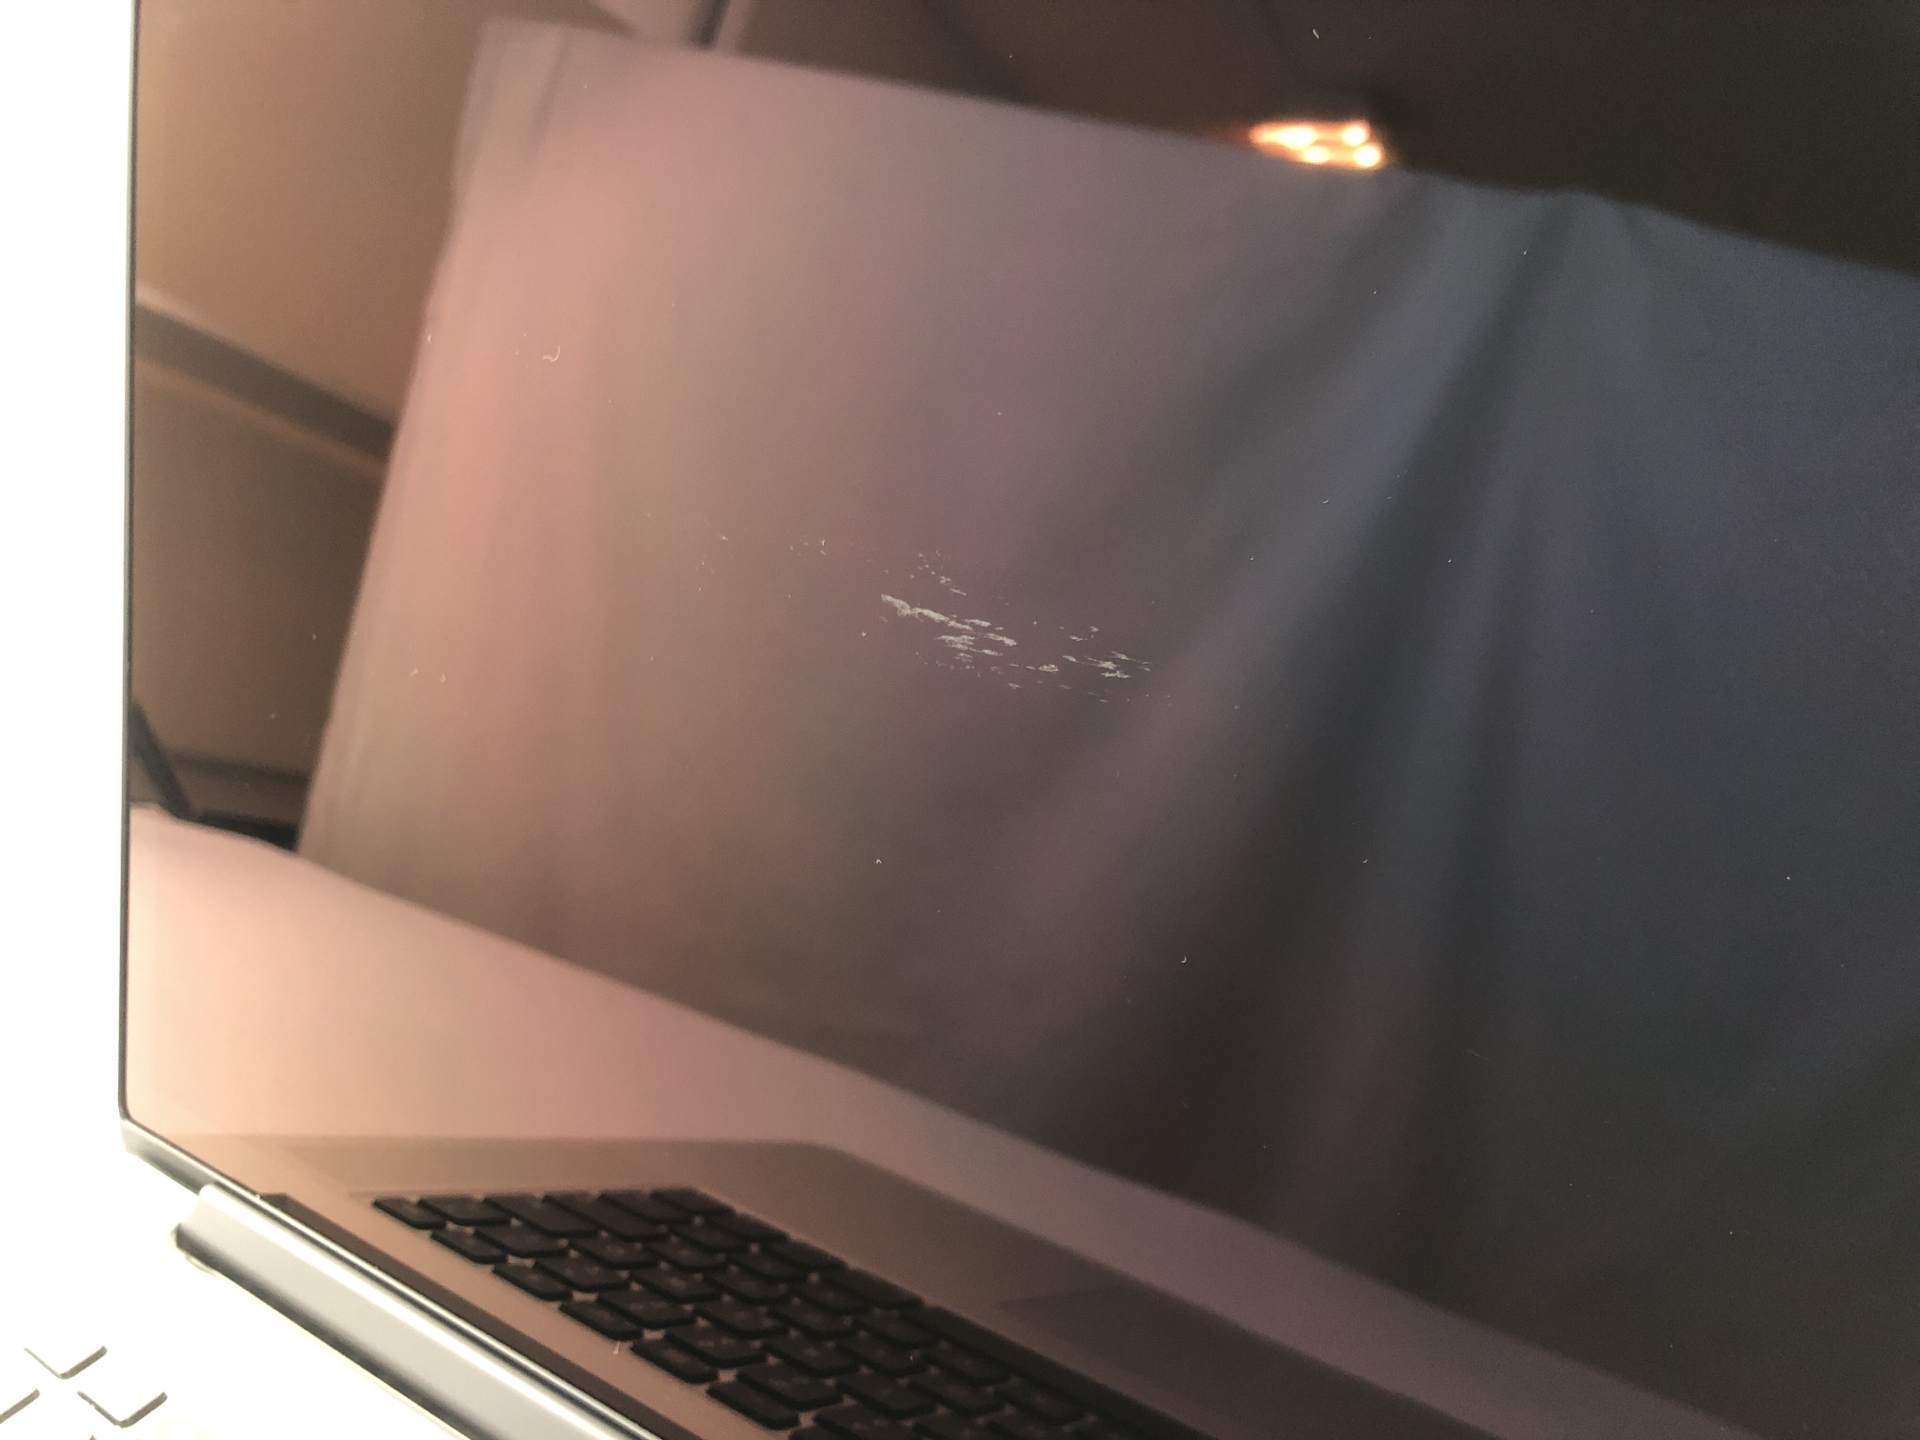 "MacBook Pro Retina 15"" Mid 2014 (Intel Quad-Core i7 2.2 GHz 16 GB RAM 512 GB SSD), Intel Quad-Core i7 2.2 GHz, 16 GB RAM, 512 GB SSD, Bild 3"